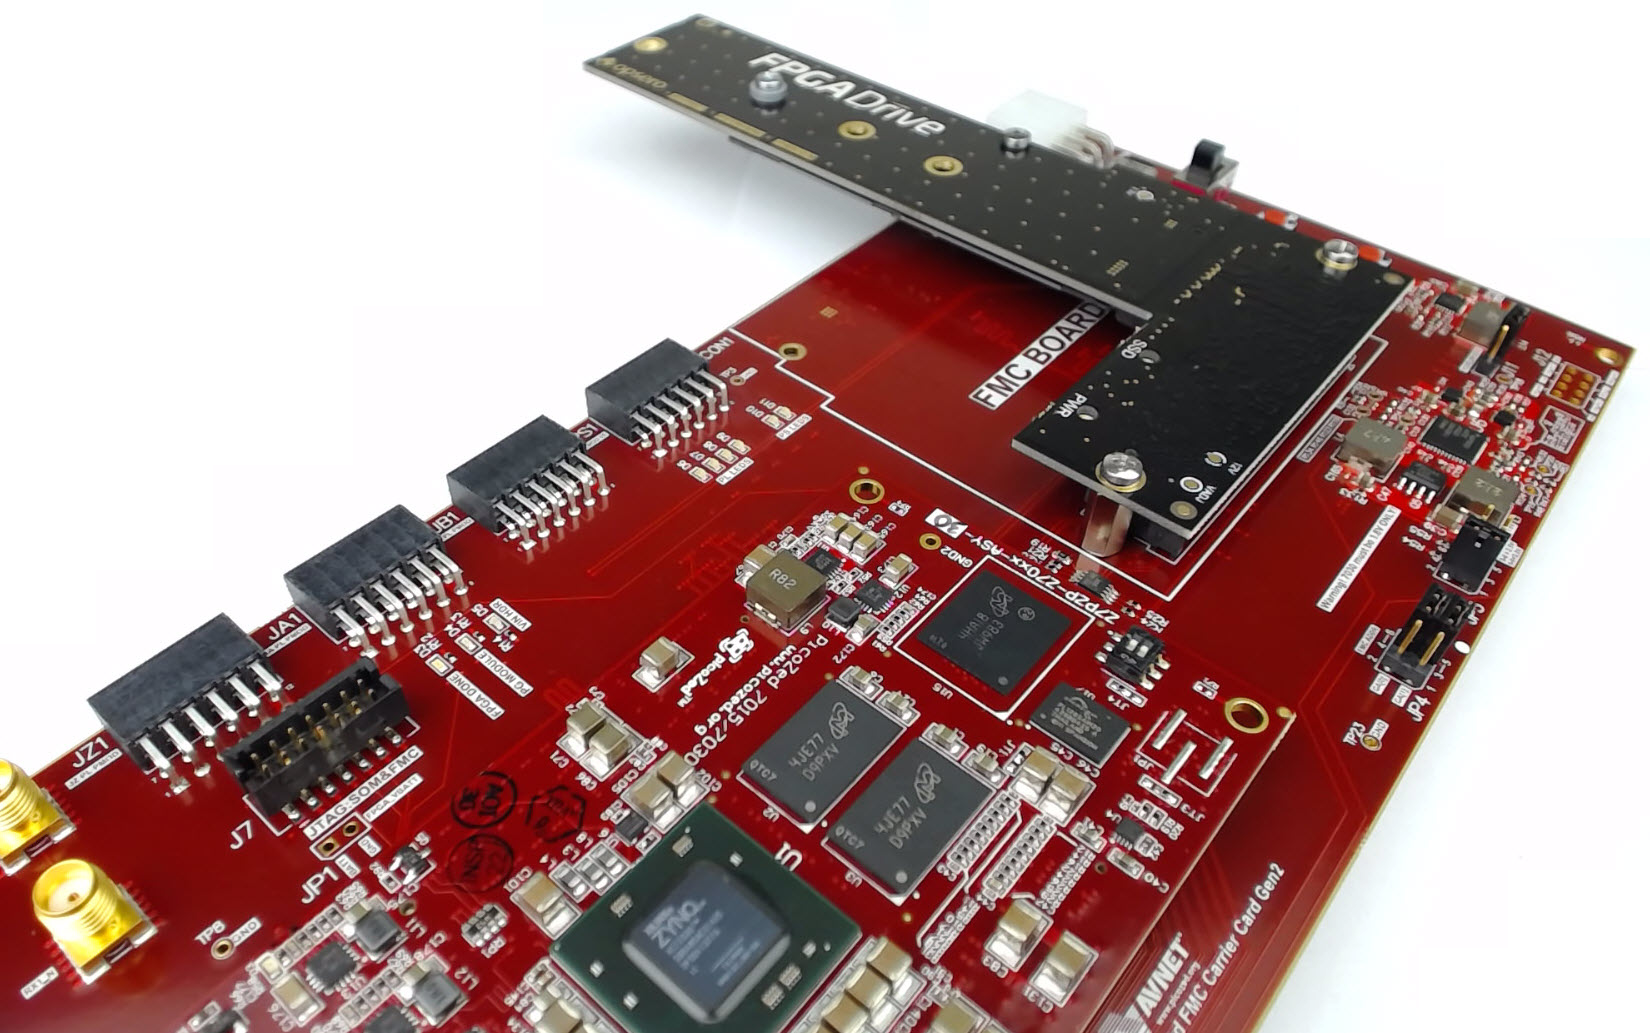 Connecting an SSD to an FPGA running PetaLinux